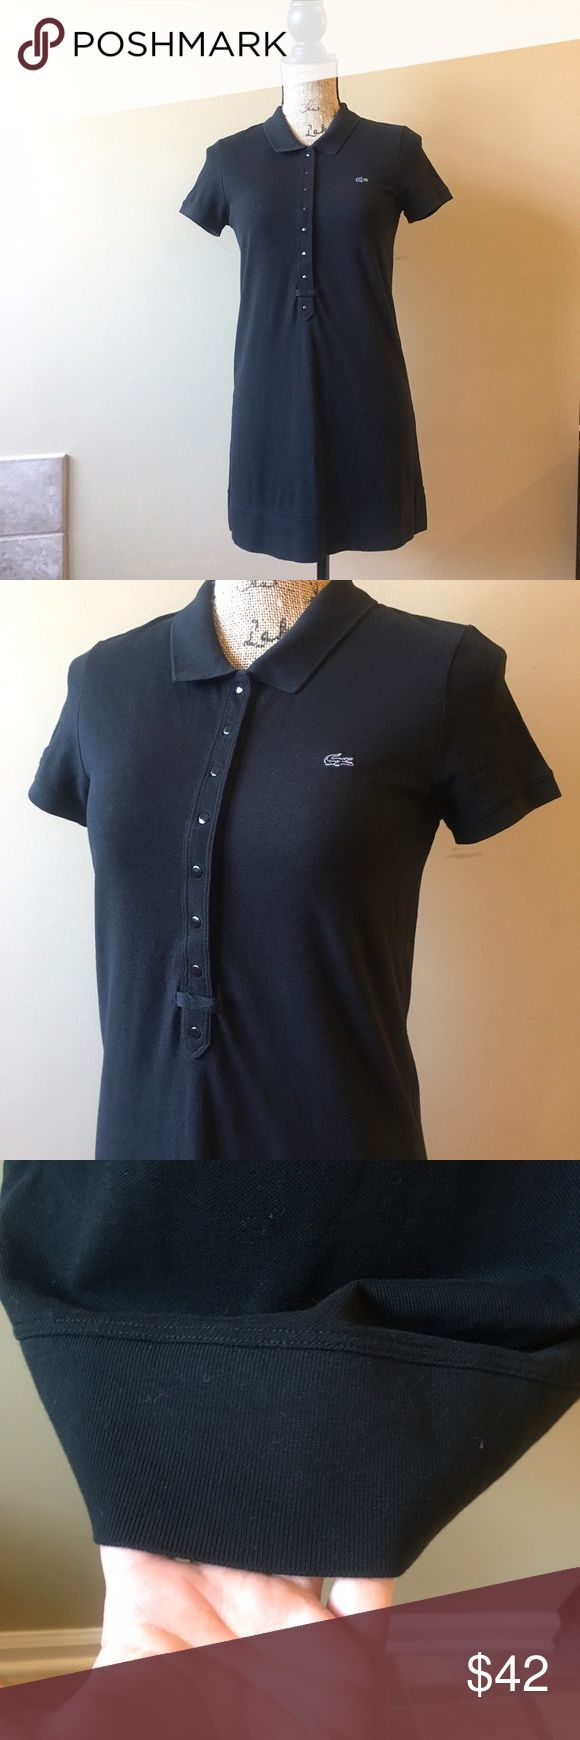 """Lacoste cotton stretch mini pique polo dress Excellent condition, no flaws. Measurements: 33"""" bust, 31"""" length, approximate. Description from website states: WOMEN'S STRETCH COTTON MINI PIQUÉ POLO DRESS EF8470-51 A flurry of refined accents for this stretch mini cotton piqué polo dress: a slim fit, a long button placket. Winning.  Polo collar, Slim fit Unicolor stretch mini cotton piqué Ribbed finishes Embroidered tone-on-tone crocodile appliqué on chest Lacoste Dresses Mini"""